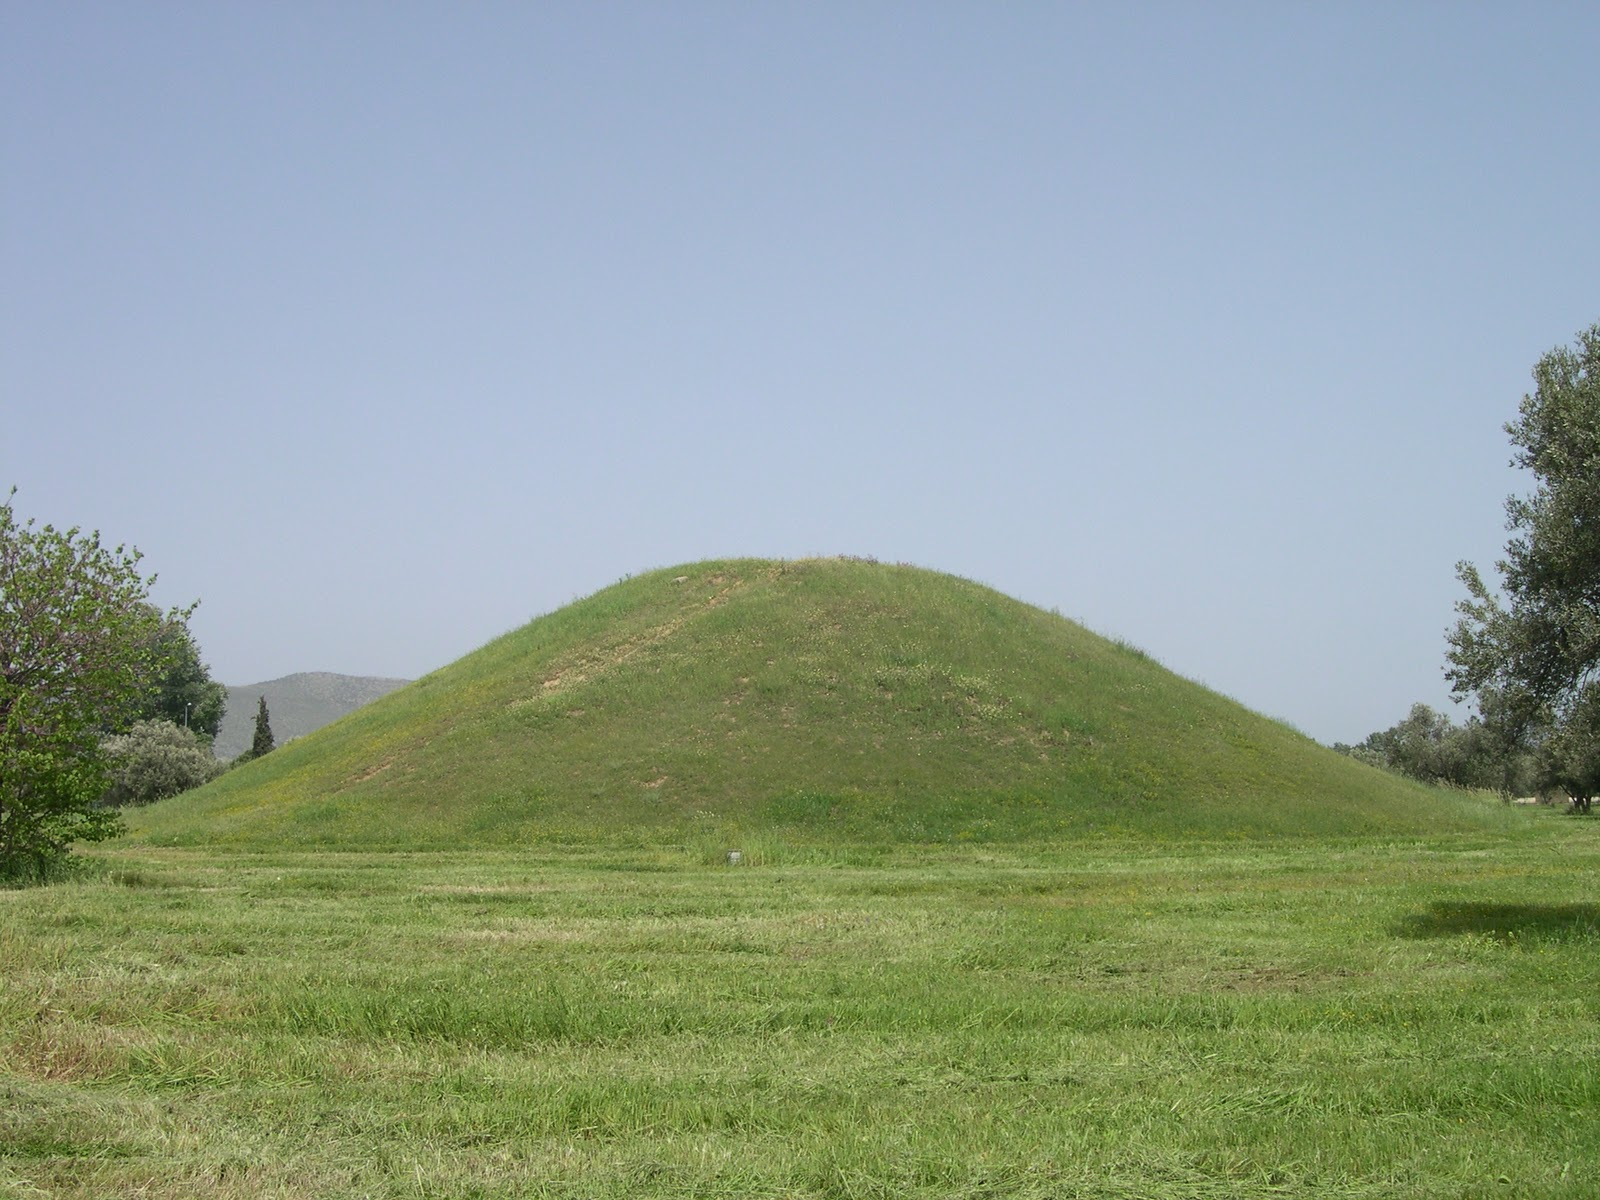 mounds buddhist personals Someblundersofindianhistoricalresearcch text cargado por insearchof_knowledge  hut winch had tin harem full of con so cu and i hen if there are two grave mounds,.